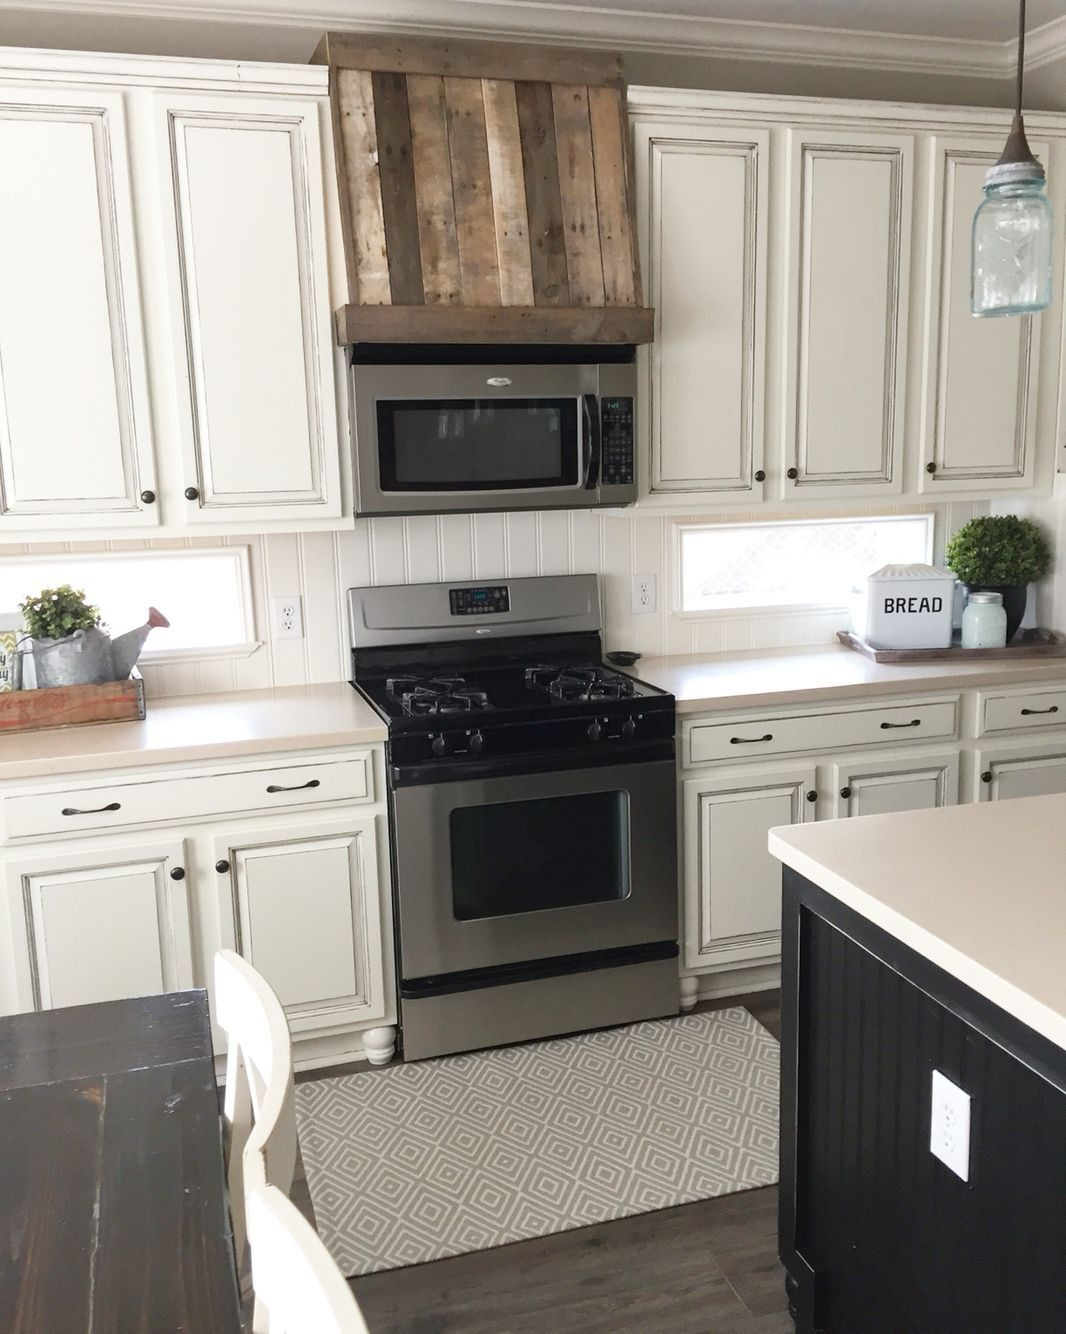 Love The Rustic Hood Above The Microwave To Cover Any Unwanted Wires Or Fan Vents Kitchen Cabinet Remodel Kitchen Flooring Home Kitchens